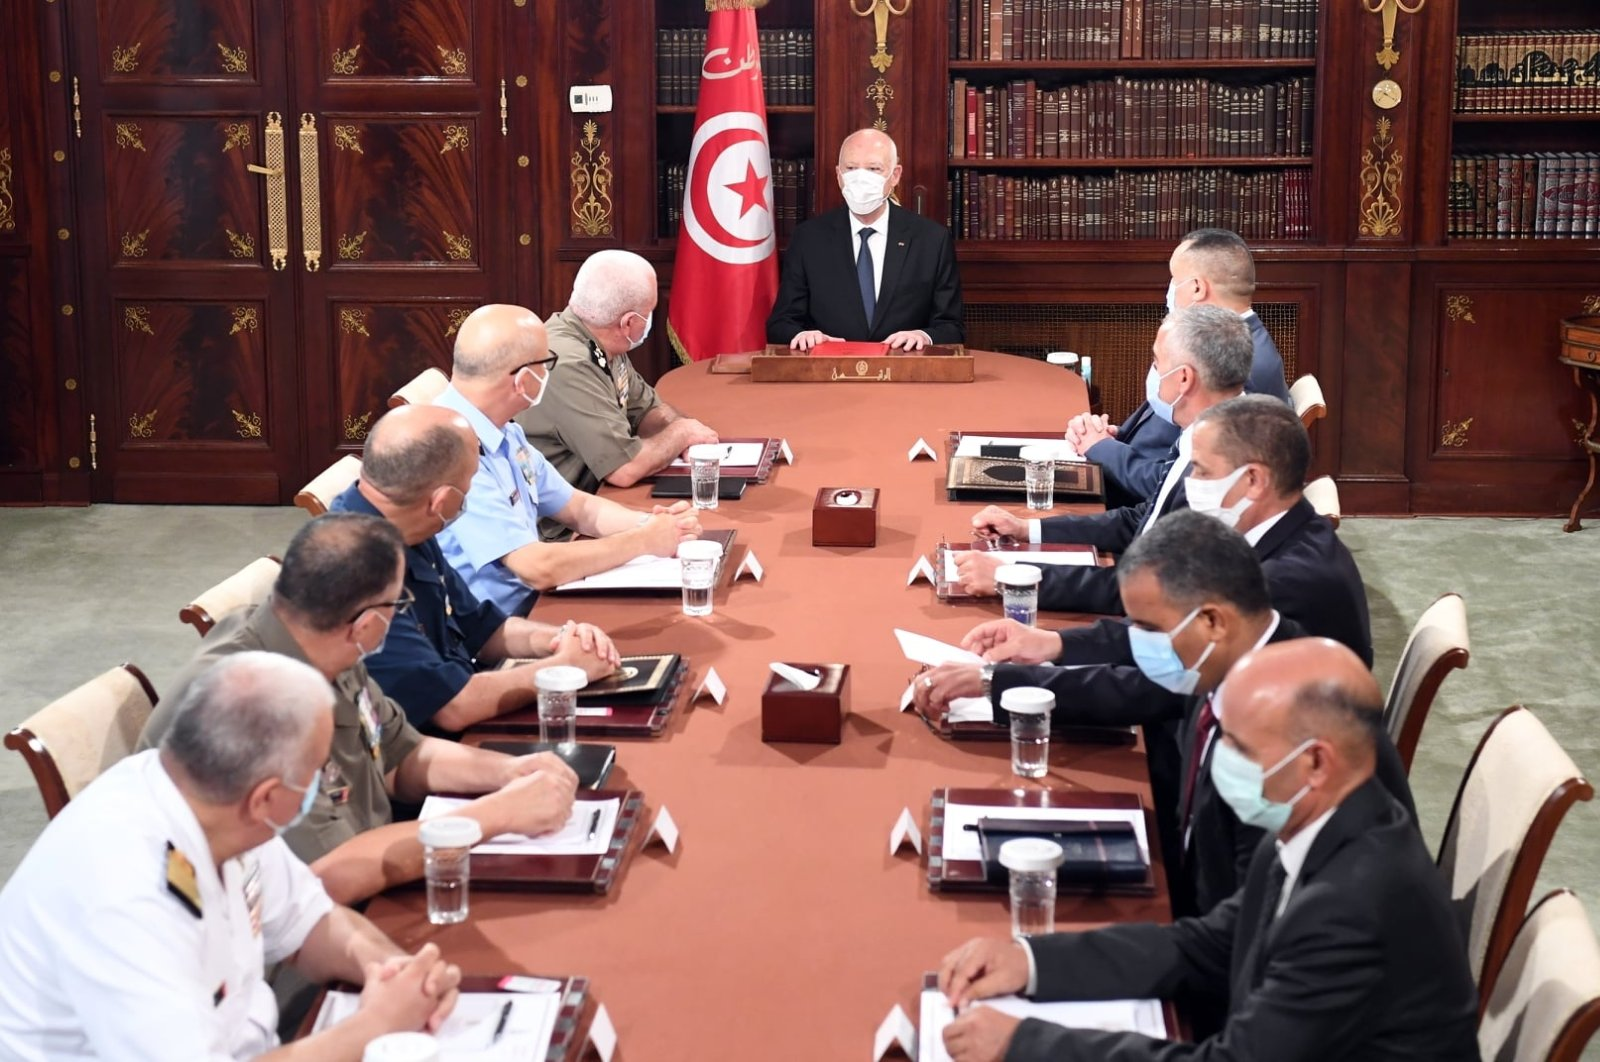 Tunisian President Kais Saied holds a meeting with military command and security officials at the Presidential Palace, Tunis, Tunisia, July 28, 2021. (AA Photo)